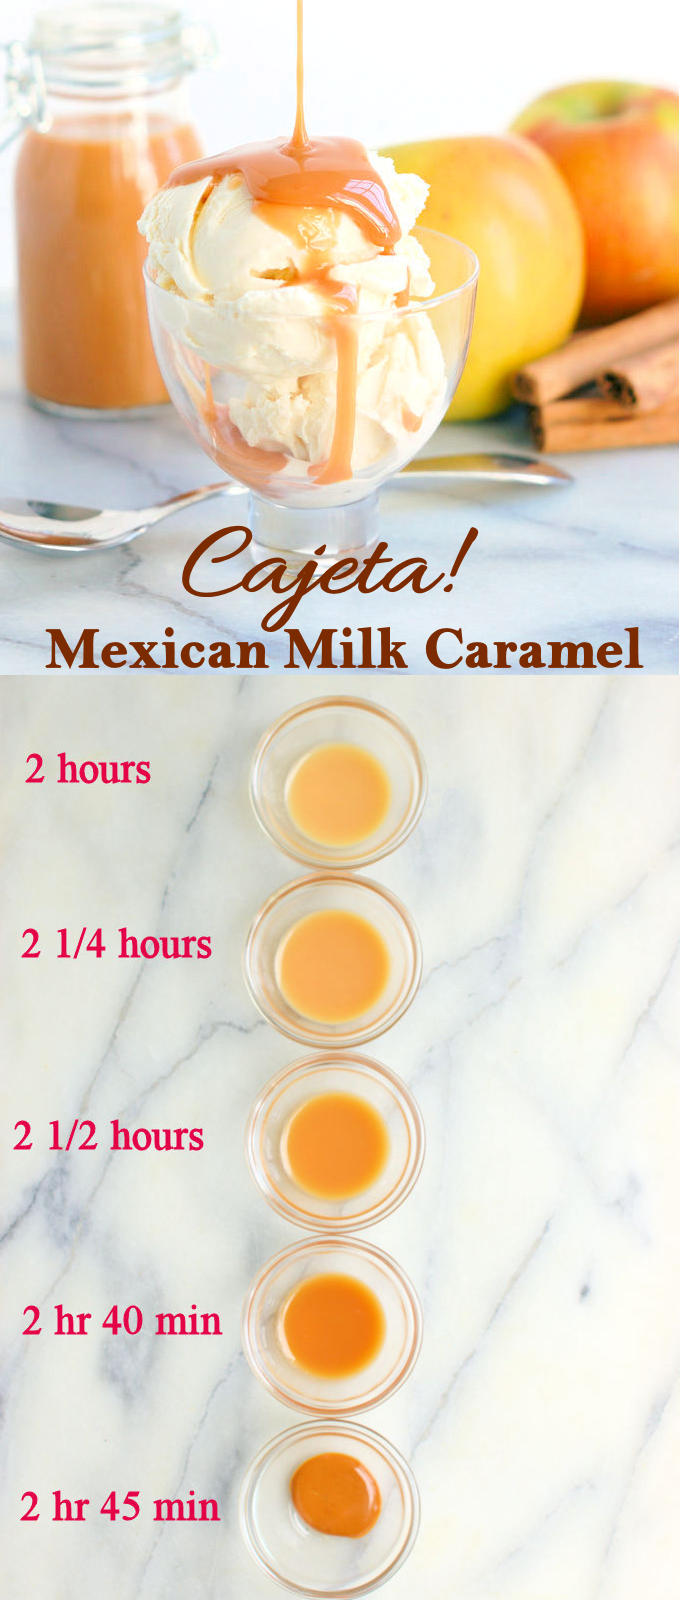 Cajeta can be made with goat's milk, cow's milk or a mixture of both. Cook longer for more candy-like texture.